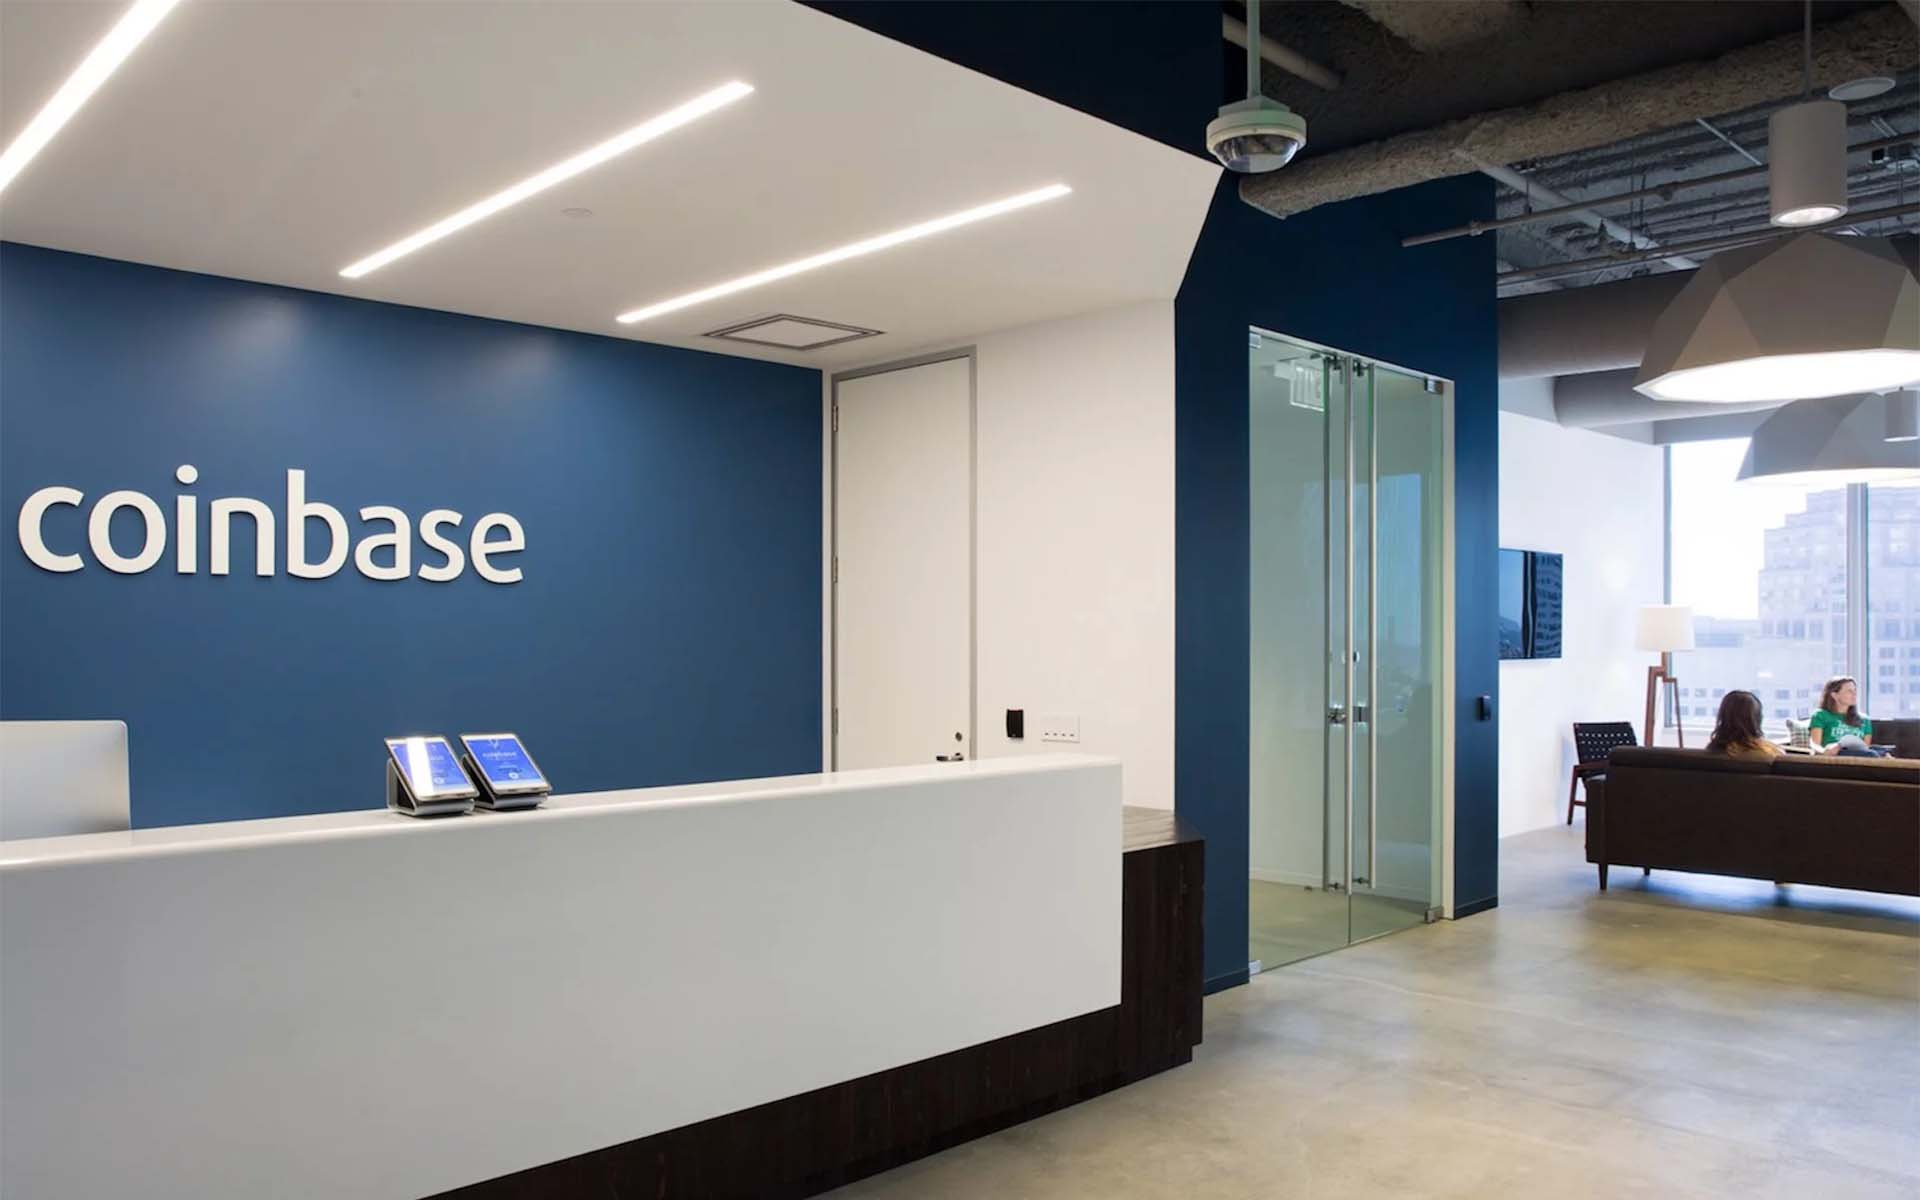 New Evidence Emerges, Points to Possible Insider Trading at Coinbase